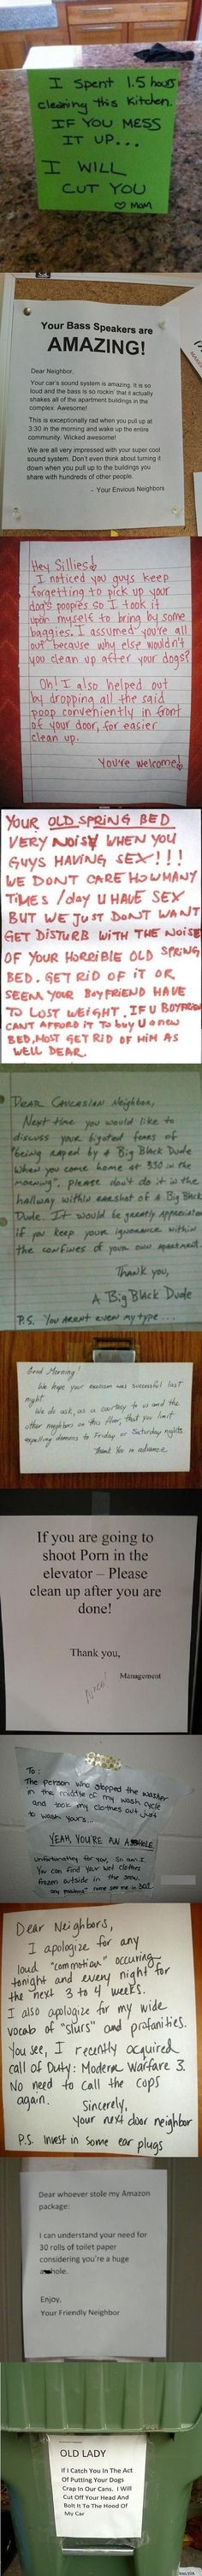 Some hilarious! Could never, would never live in an apartment for some of those reasons. Thank goodness I never had to!